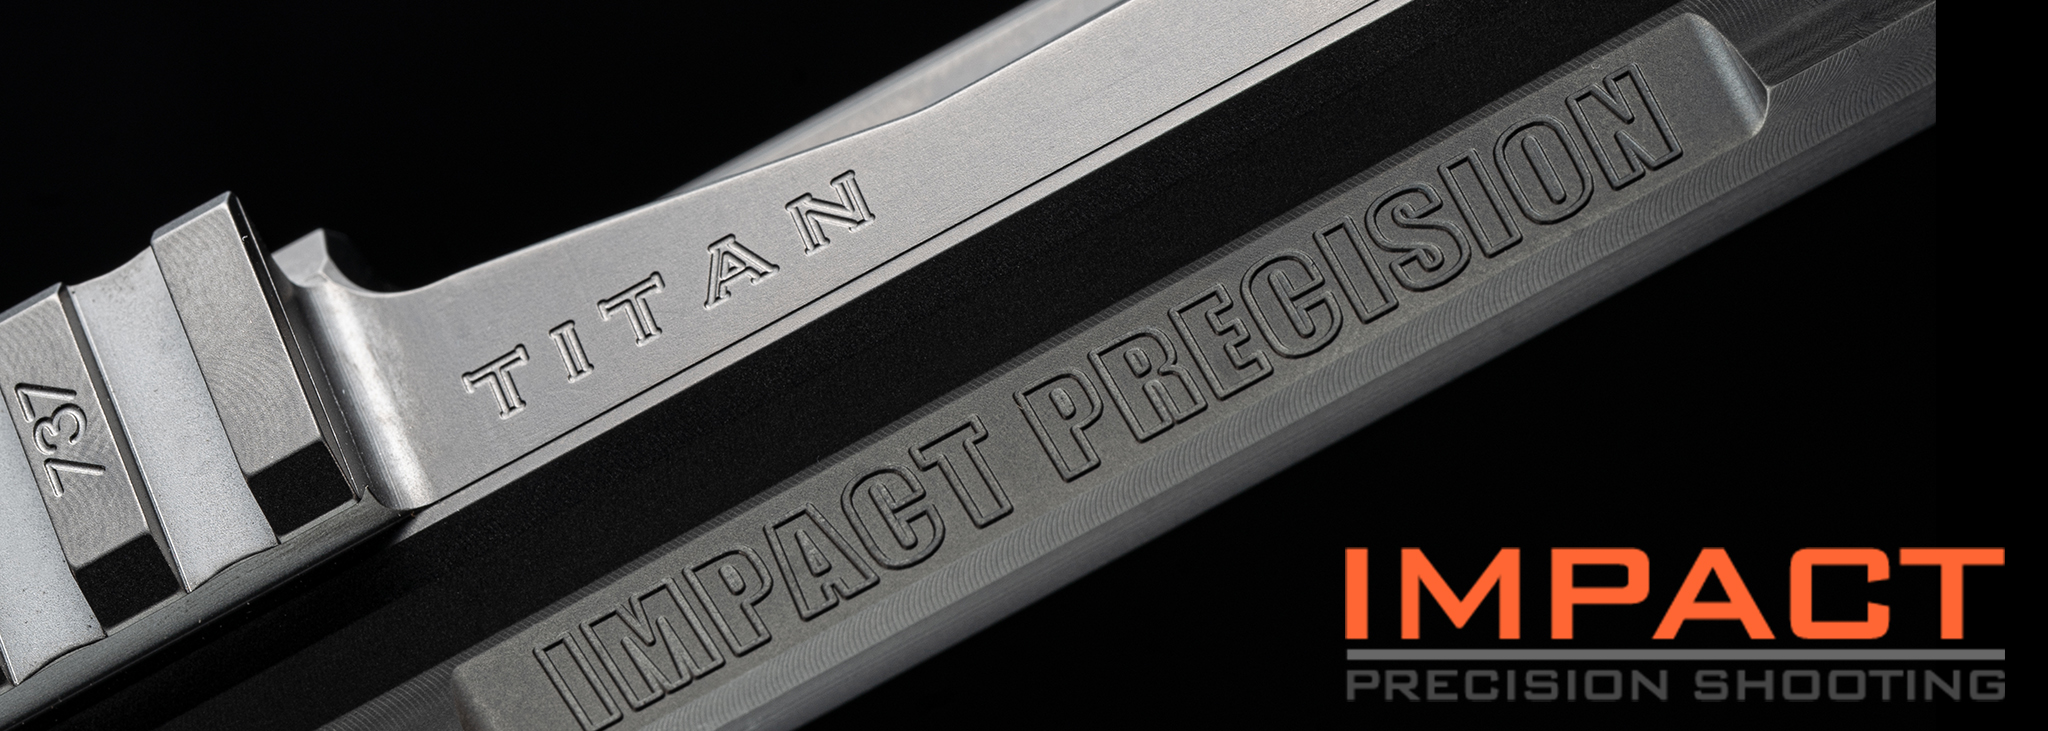 impact-precision-collections-photo.jpg